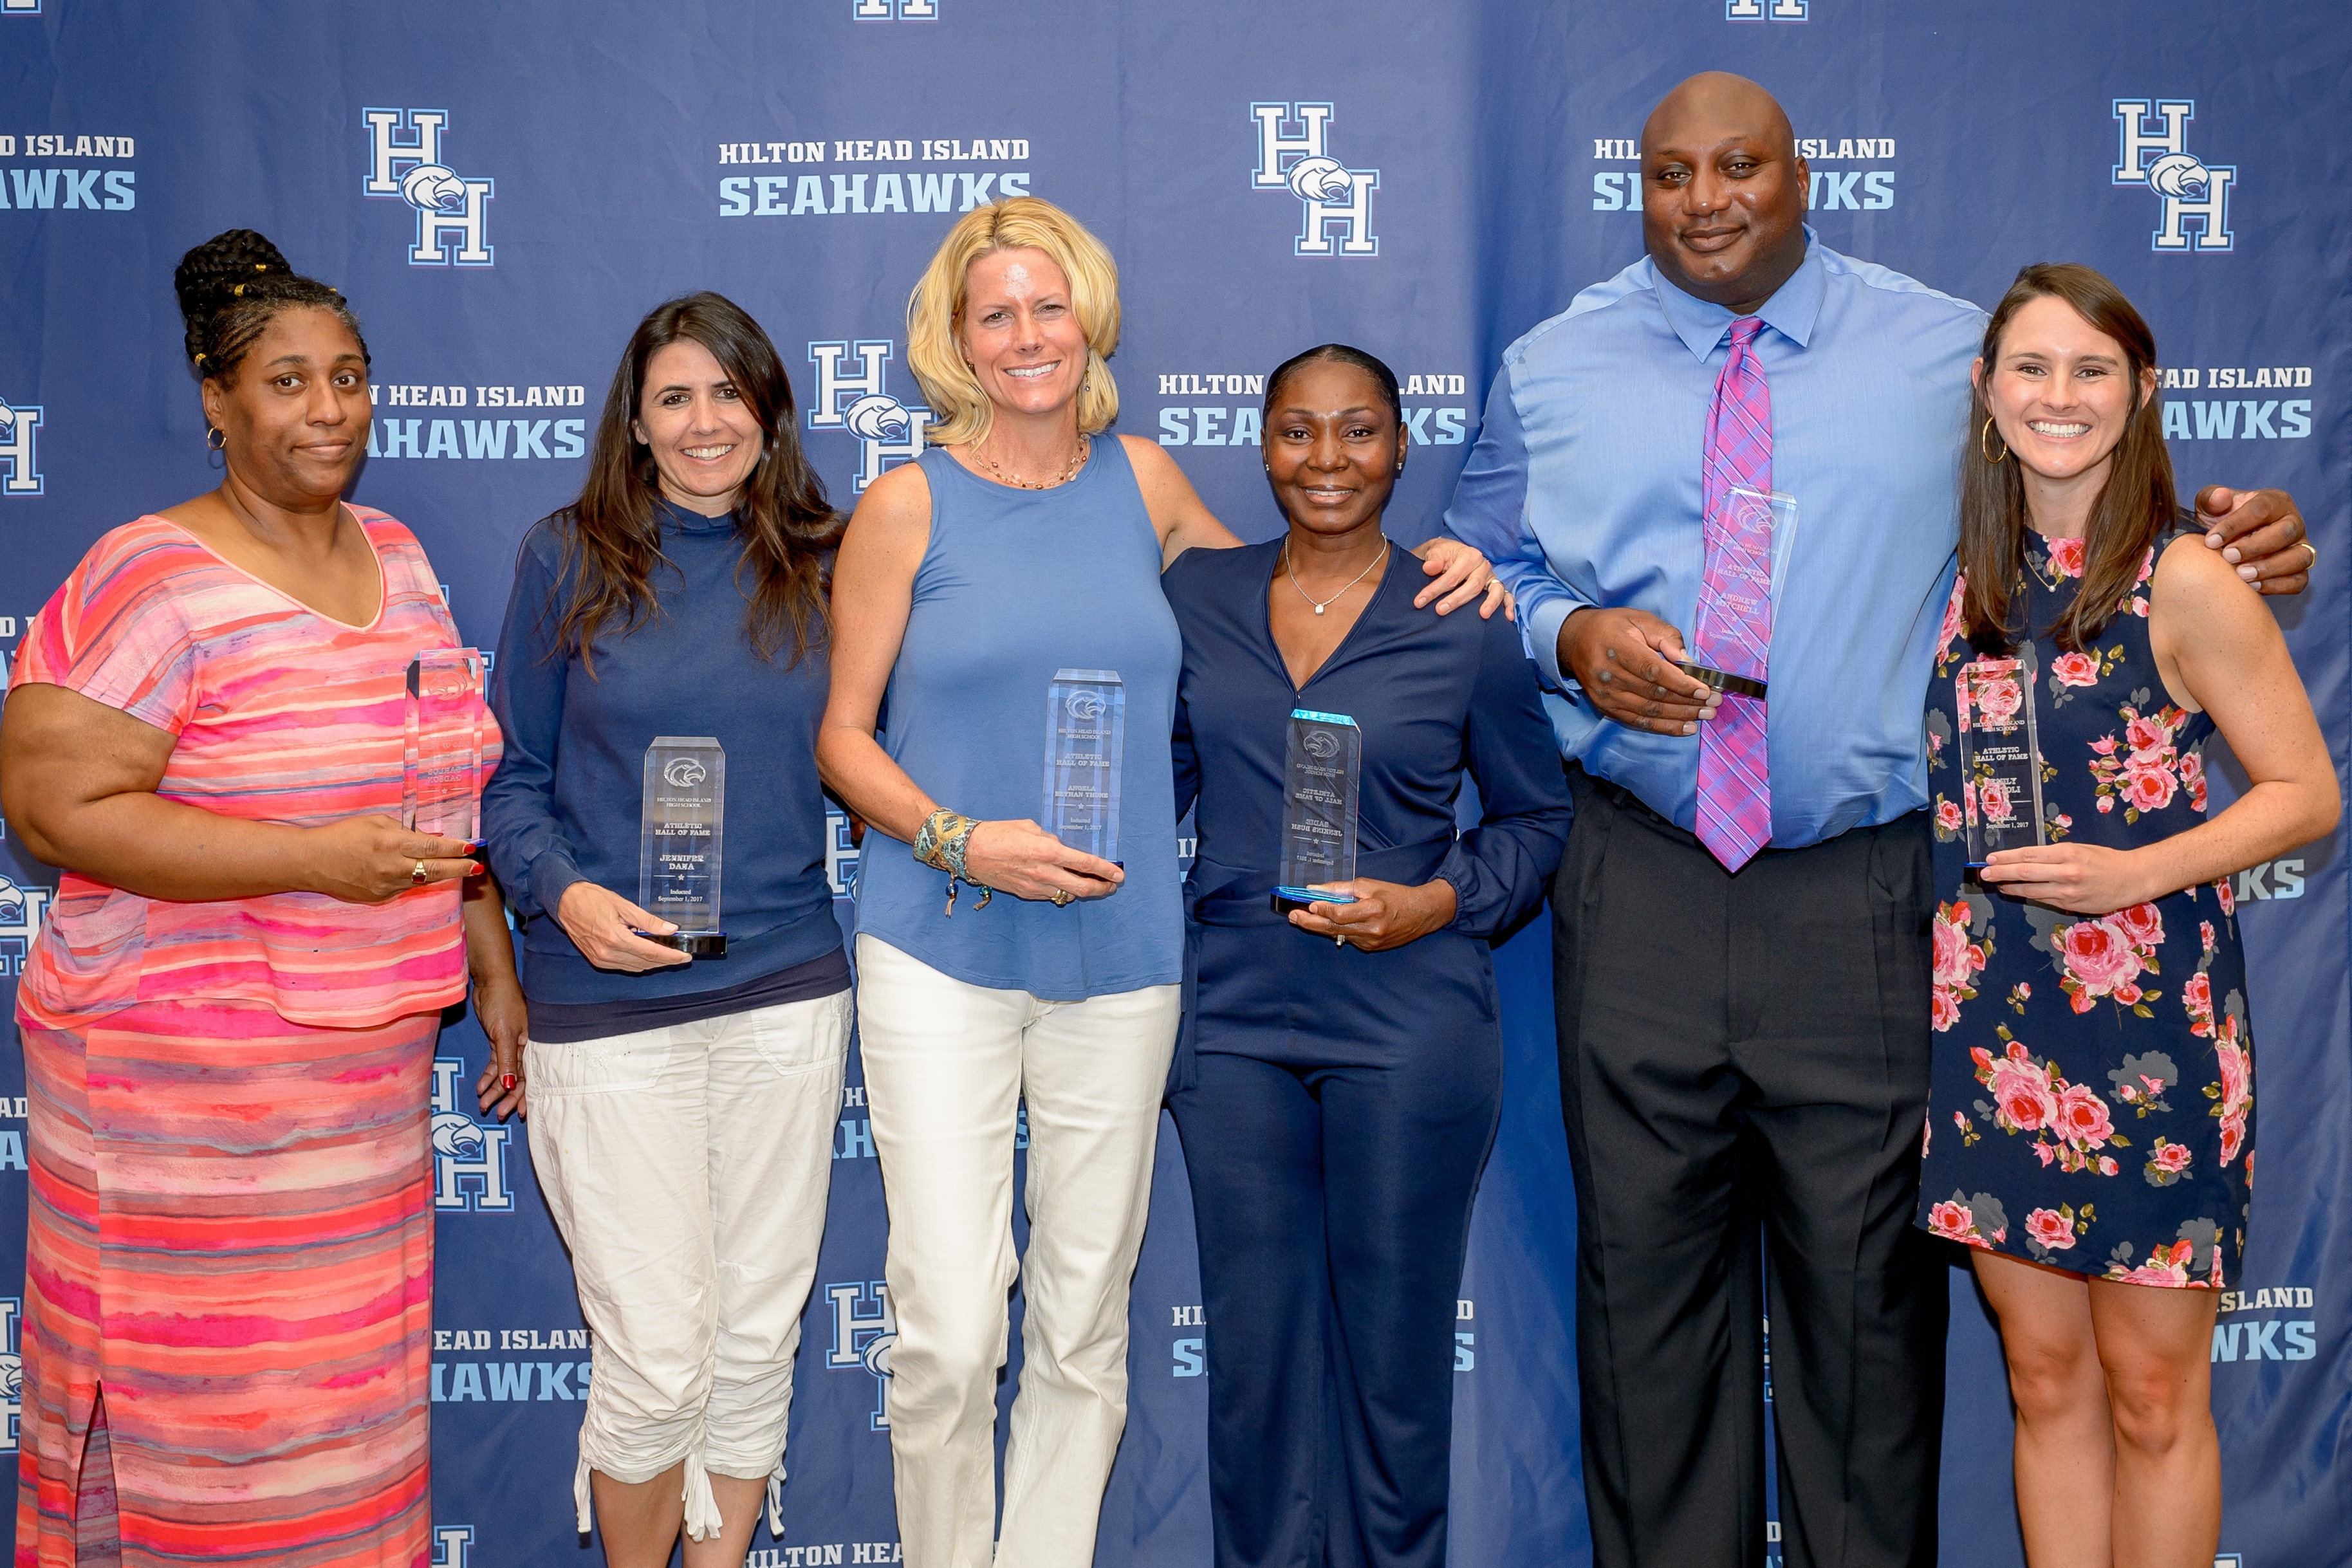 2017 Athletic Hall of Fame Inductees join Hall of Fame September 1st 2017